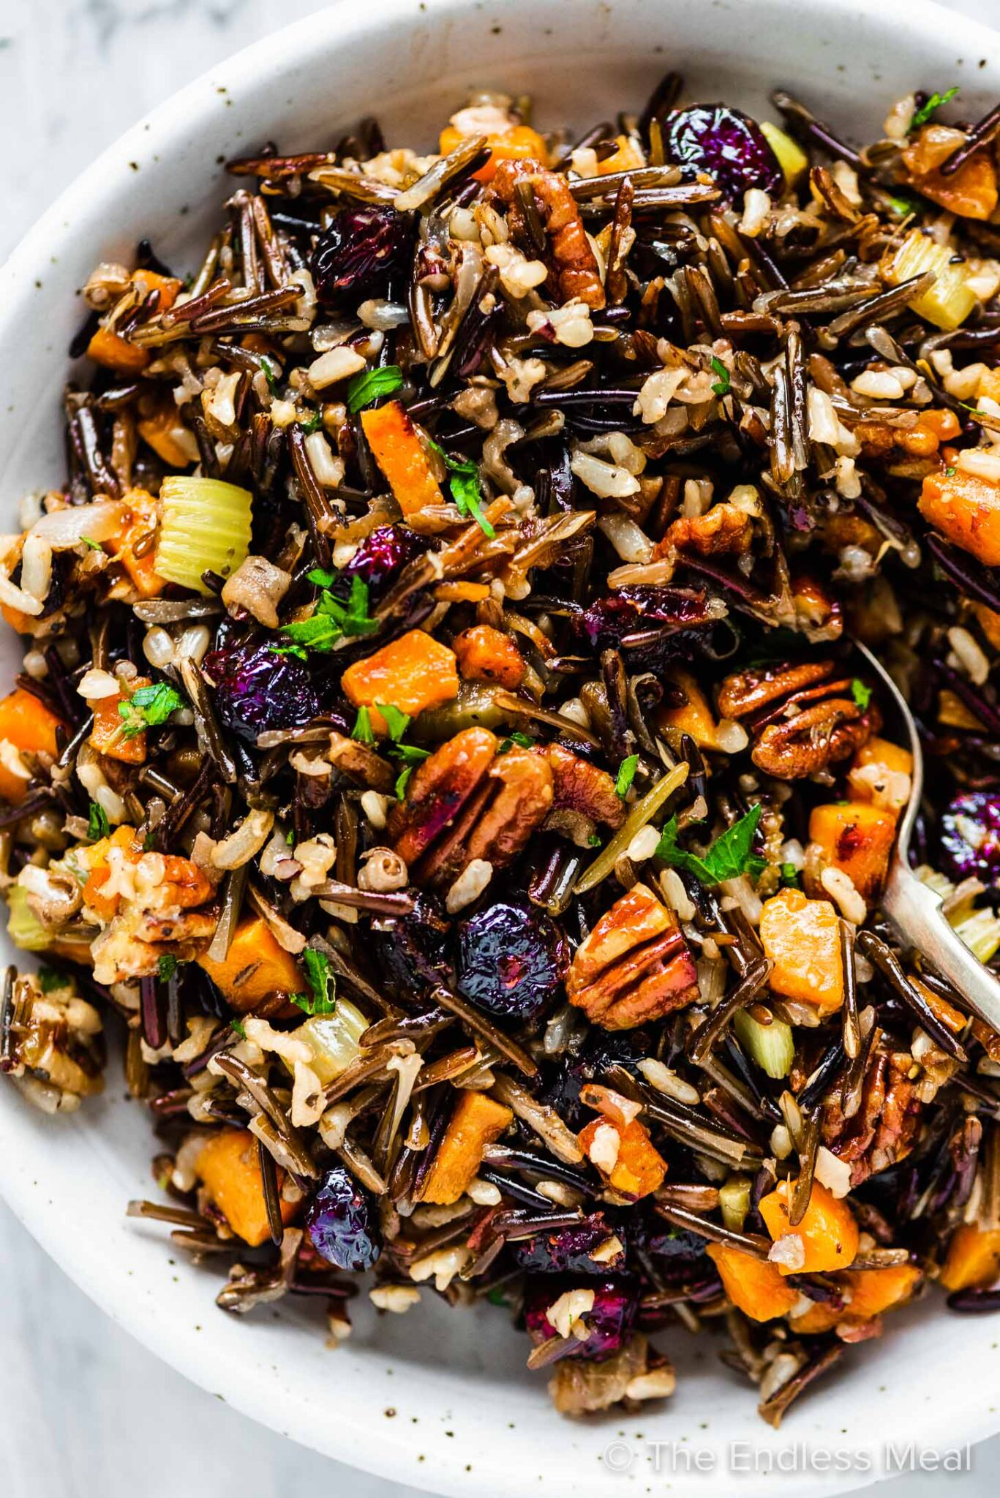 PIN TO SAVE! Our favorite wild rice stuffing is made with a wild rice blend cooked in a flavorful broth then mixed with cranberries, pecans, and sweet potatoes. #theendlessmeal #wildricestuffing #wildricepilaf #ricepilaf #wildrice #ricestuffing #stuffing #dressing #thanksgiving #thanksgivingrecipe #christmas #christmasdinner